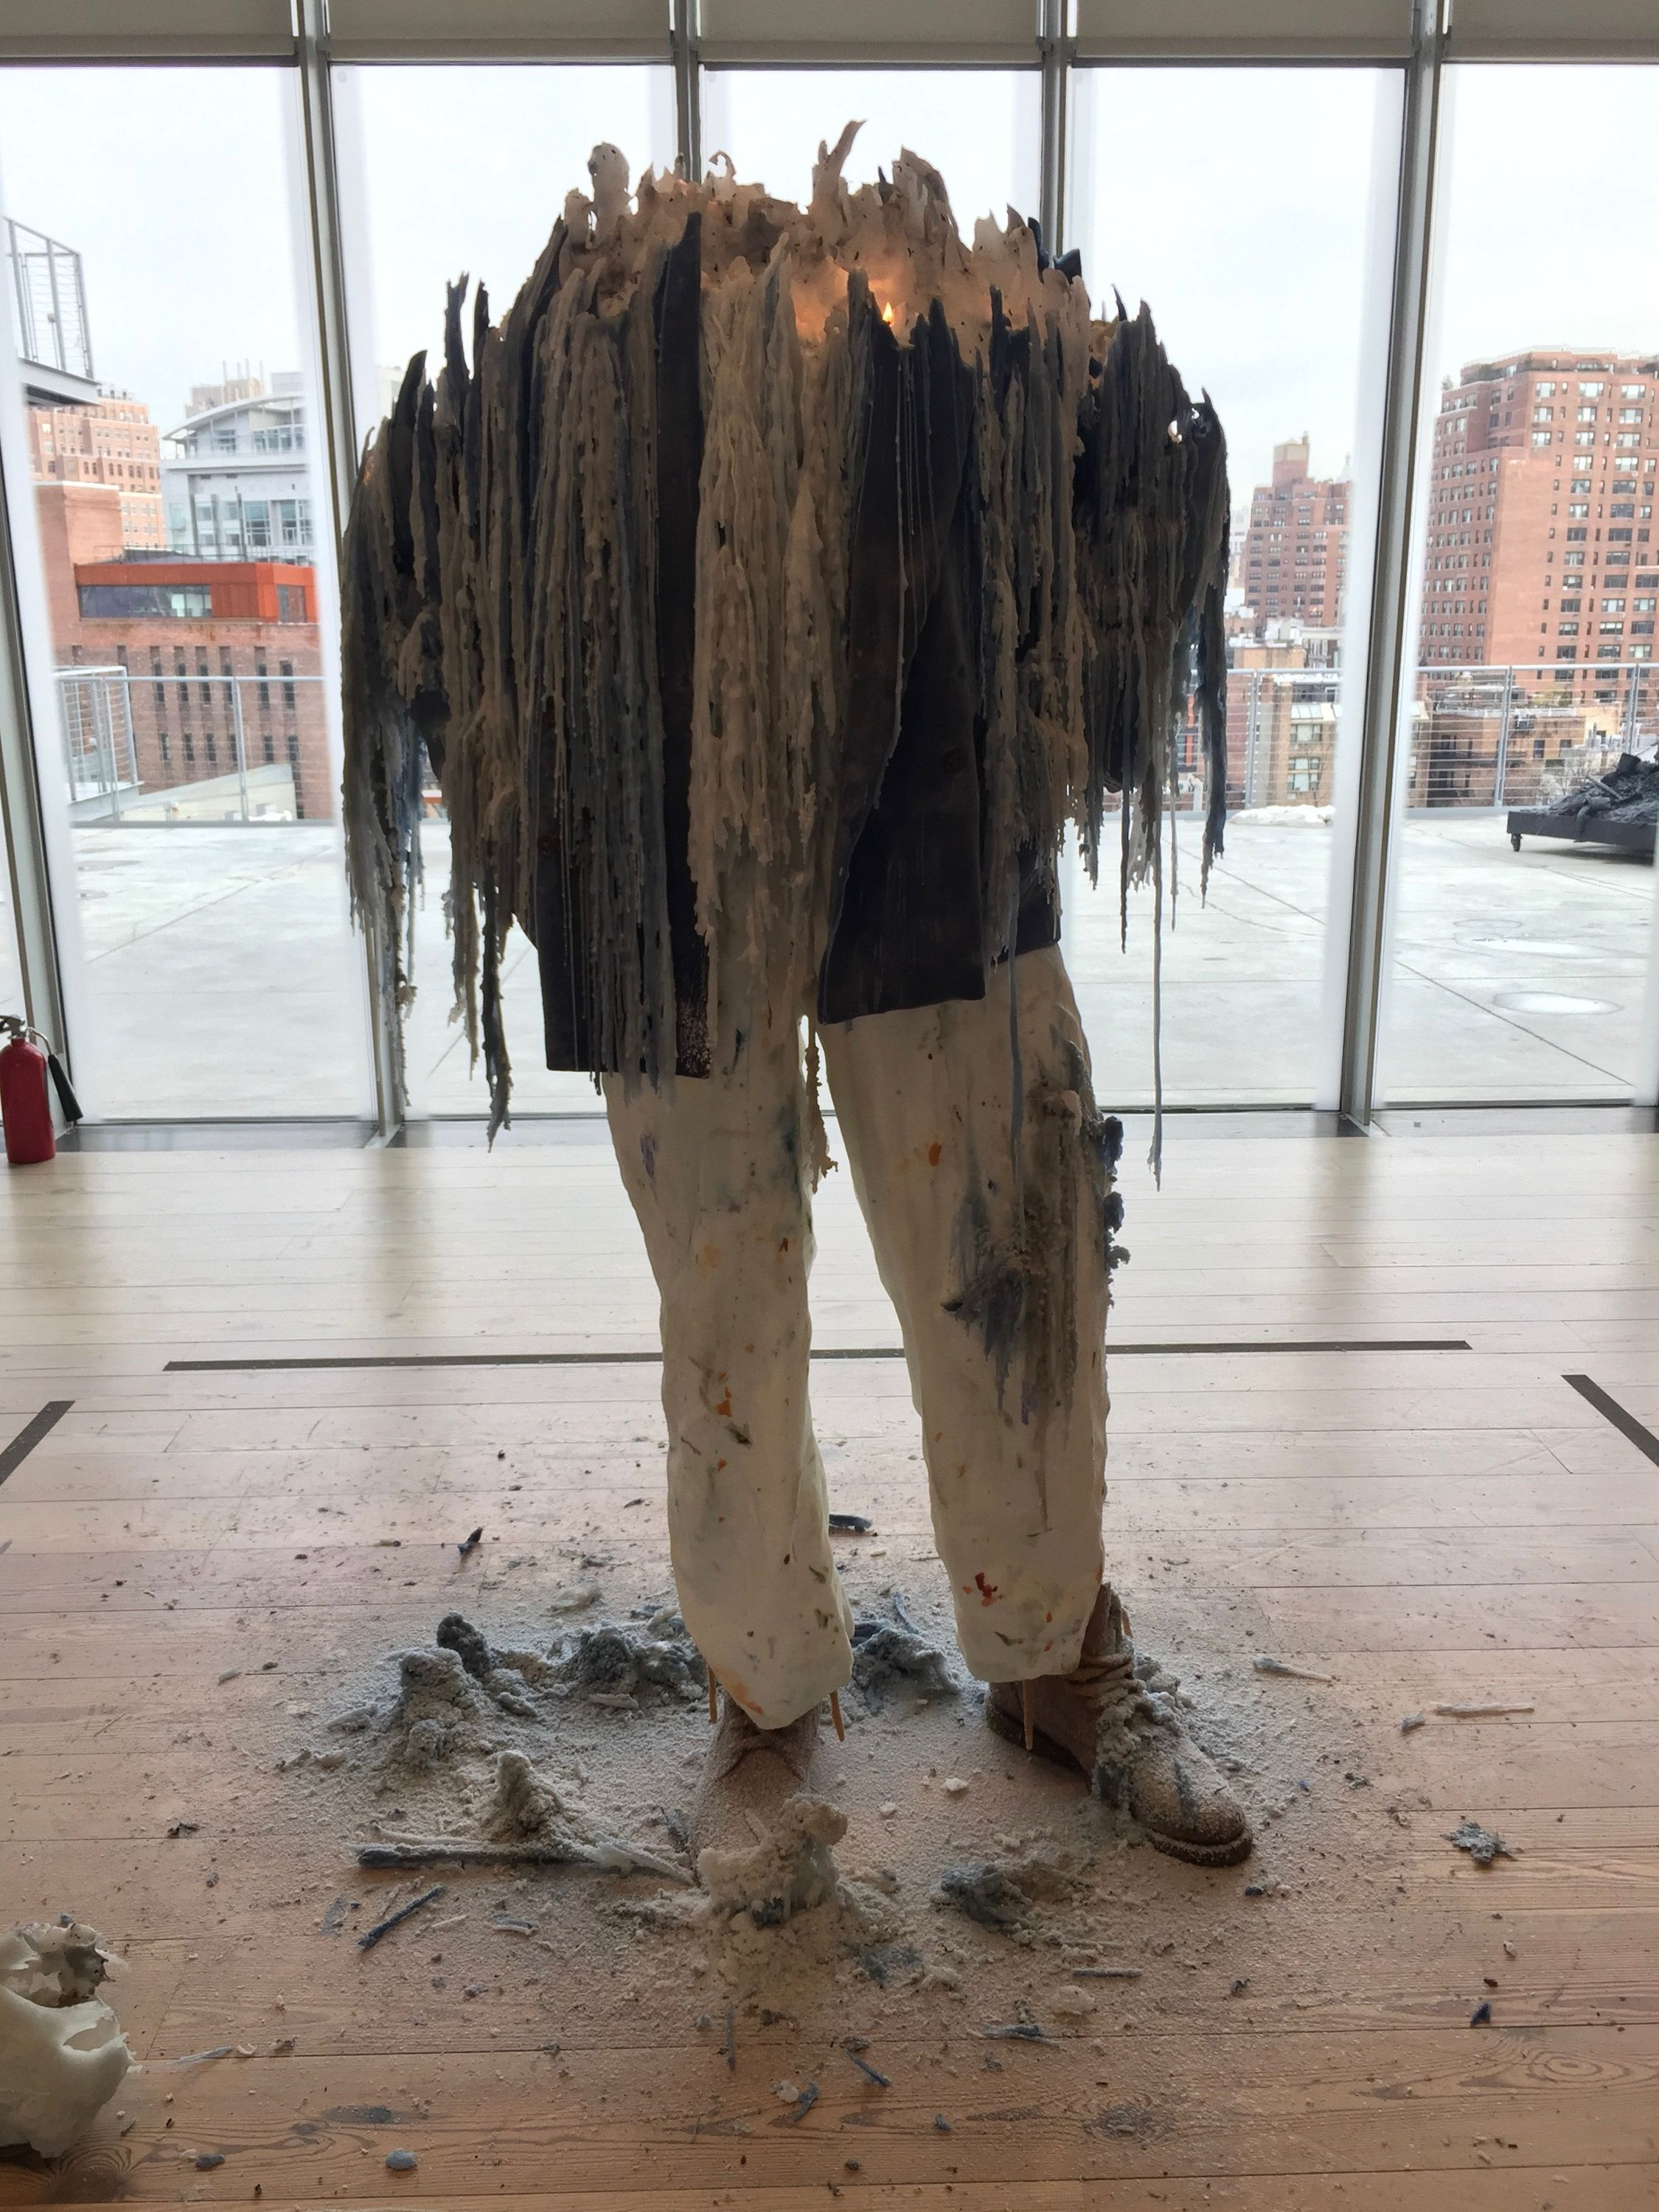 a sculpture of julian schnabel at the whitney museum, new york, january 2017